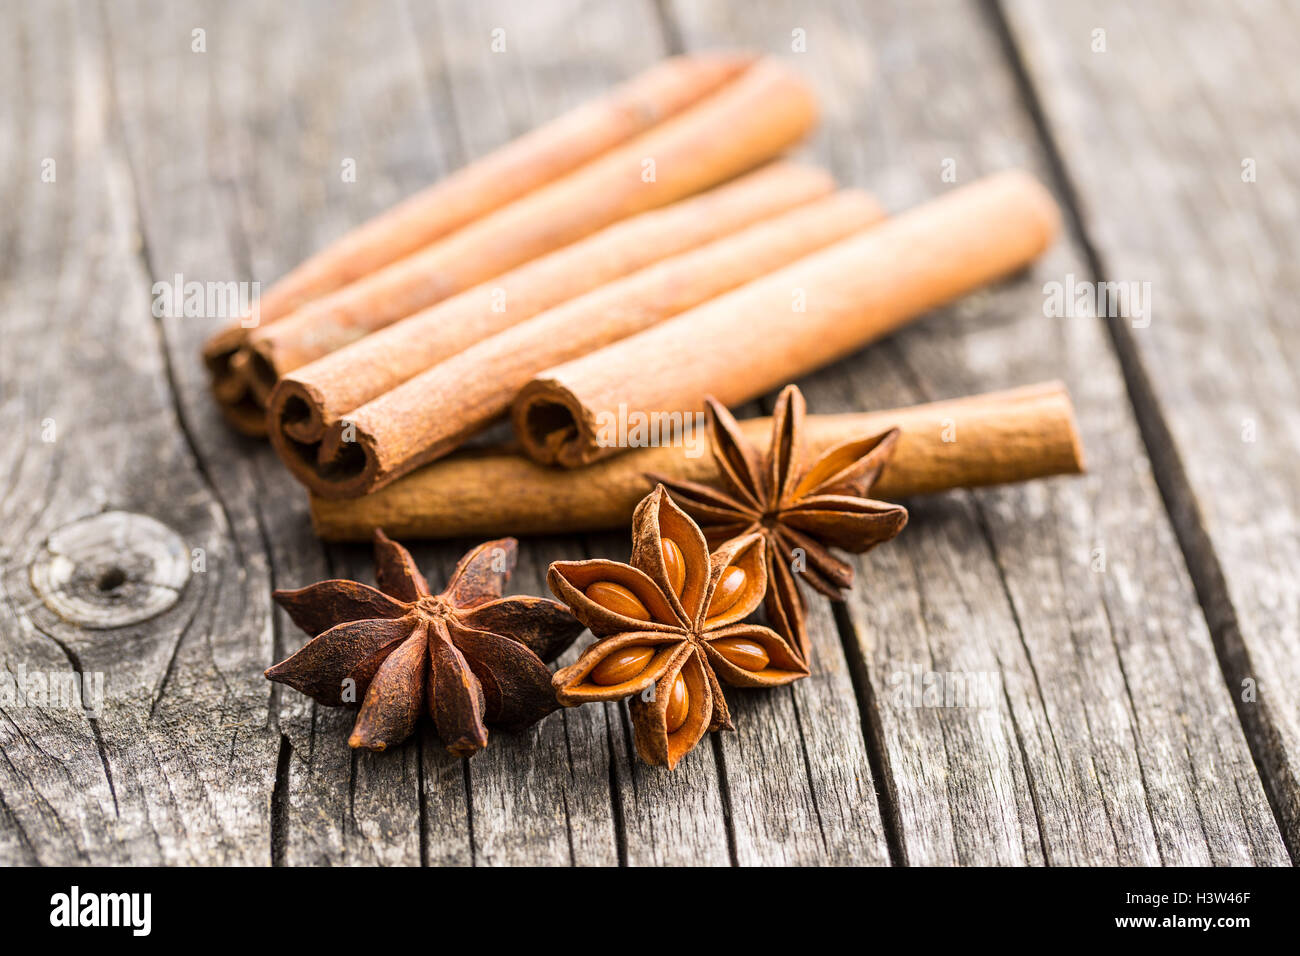 Cinnamon sticks and anise stars on old wooden table. - Stock Image